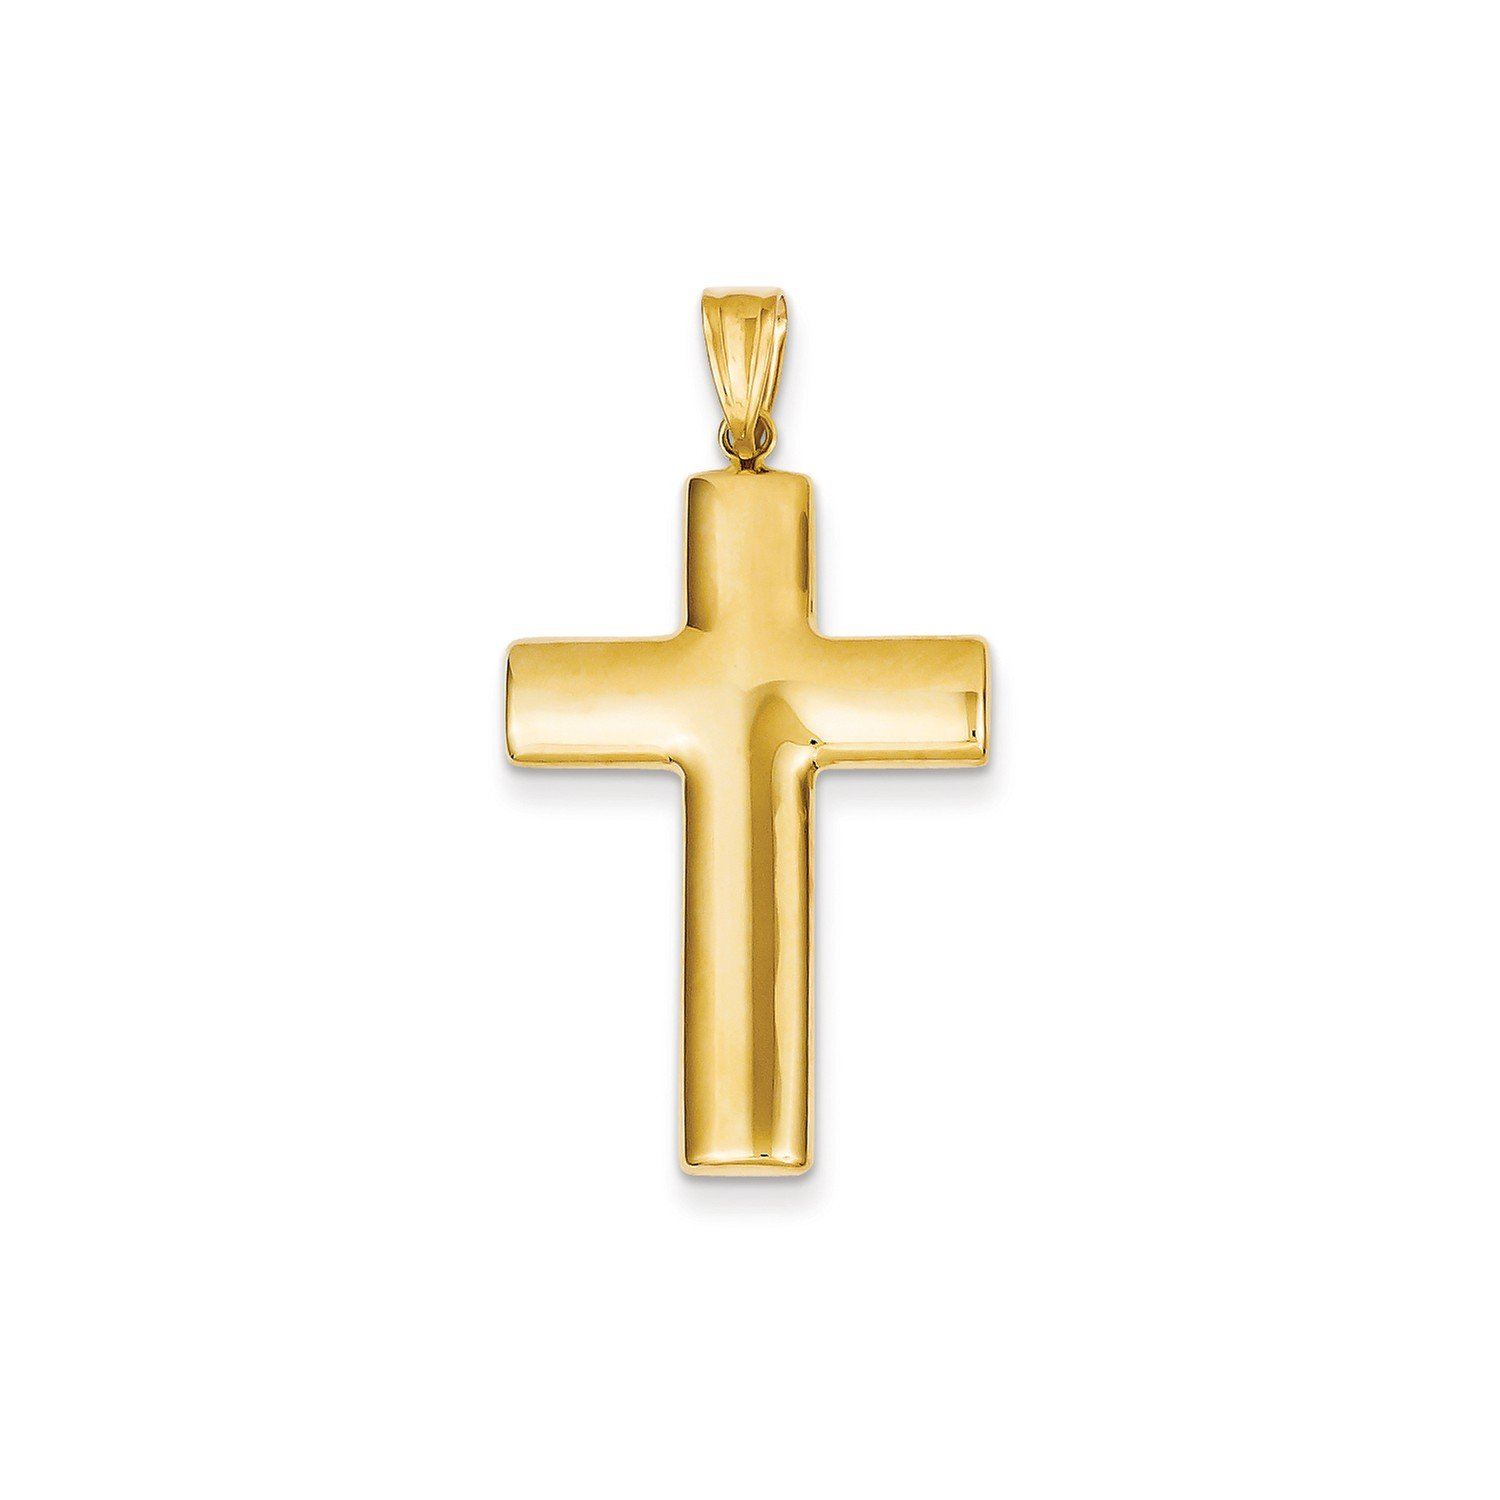 Roy Rose Jewelry 14K Yellow Gold Hollow Cross Pendant 45mm length